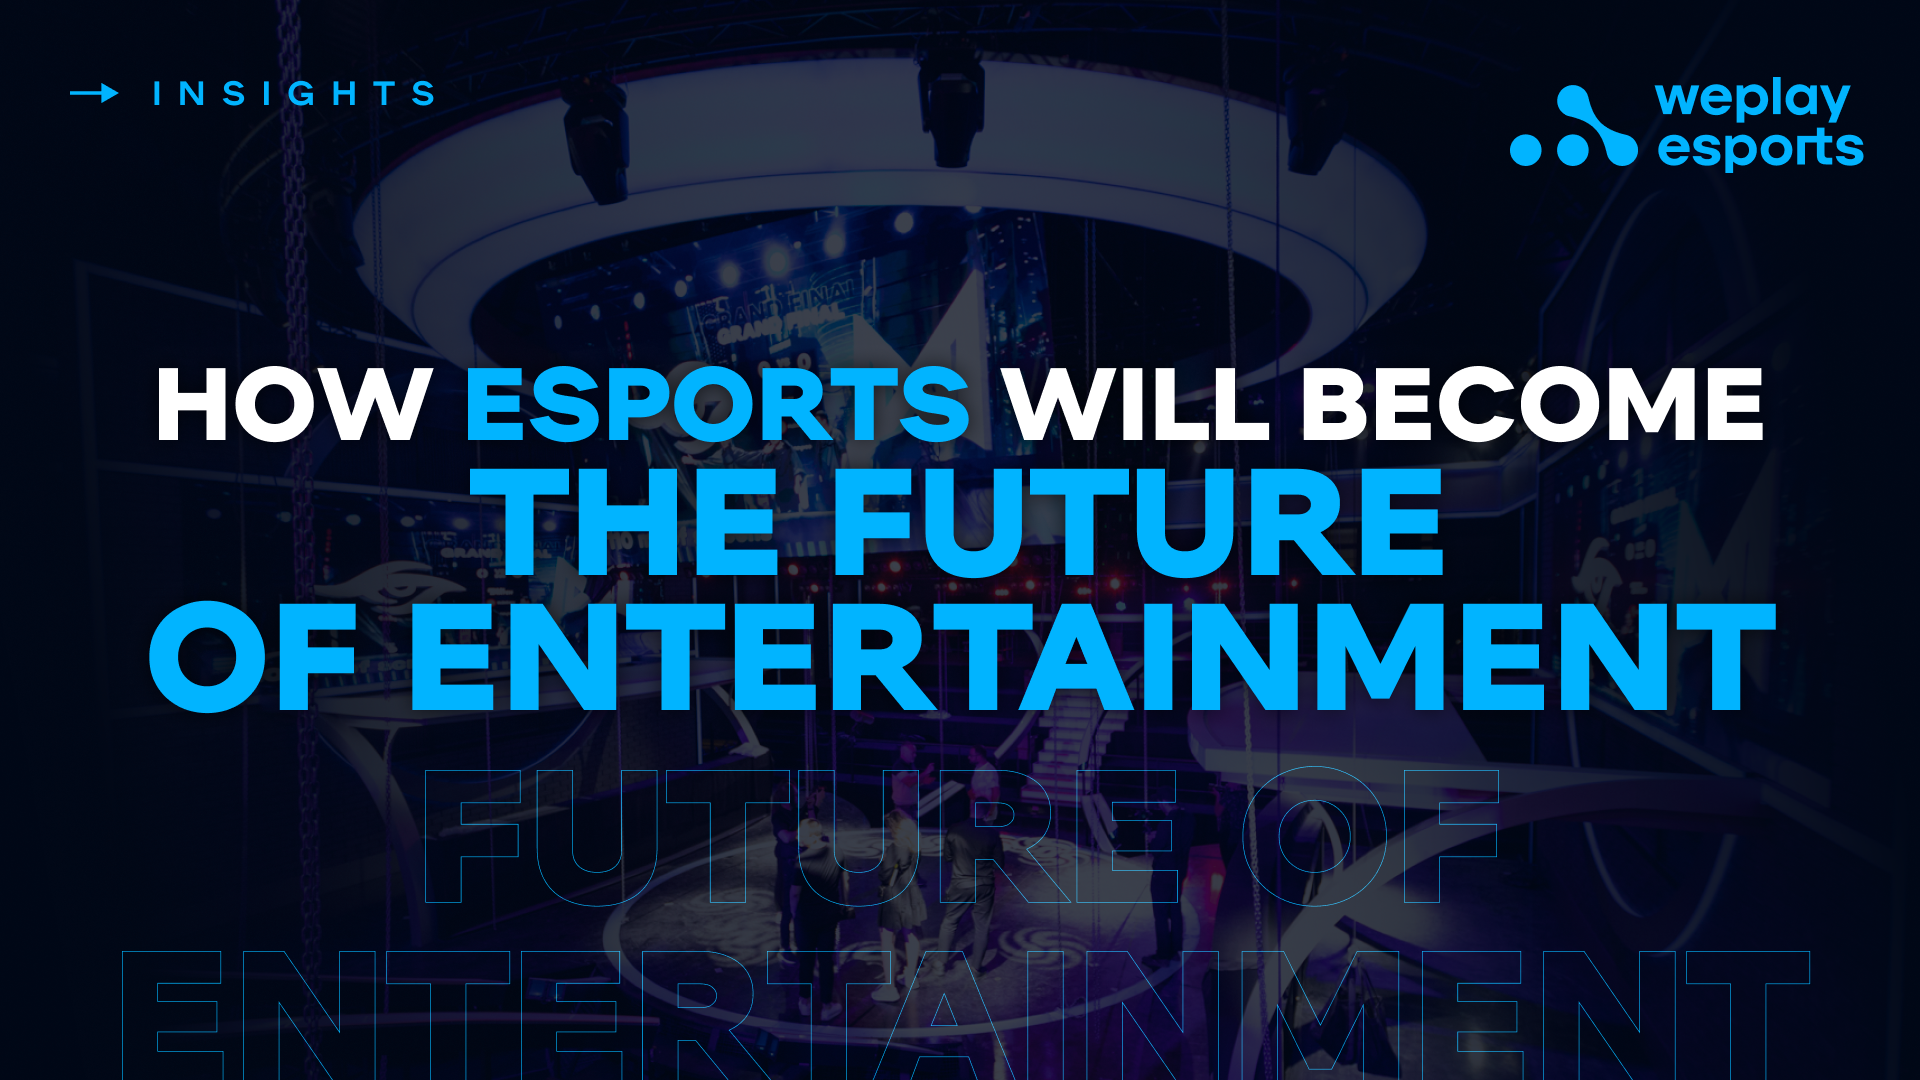 How Esports Will Become the Future of Entertainment